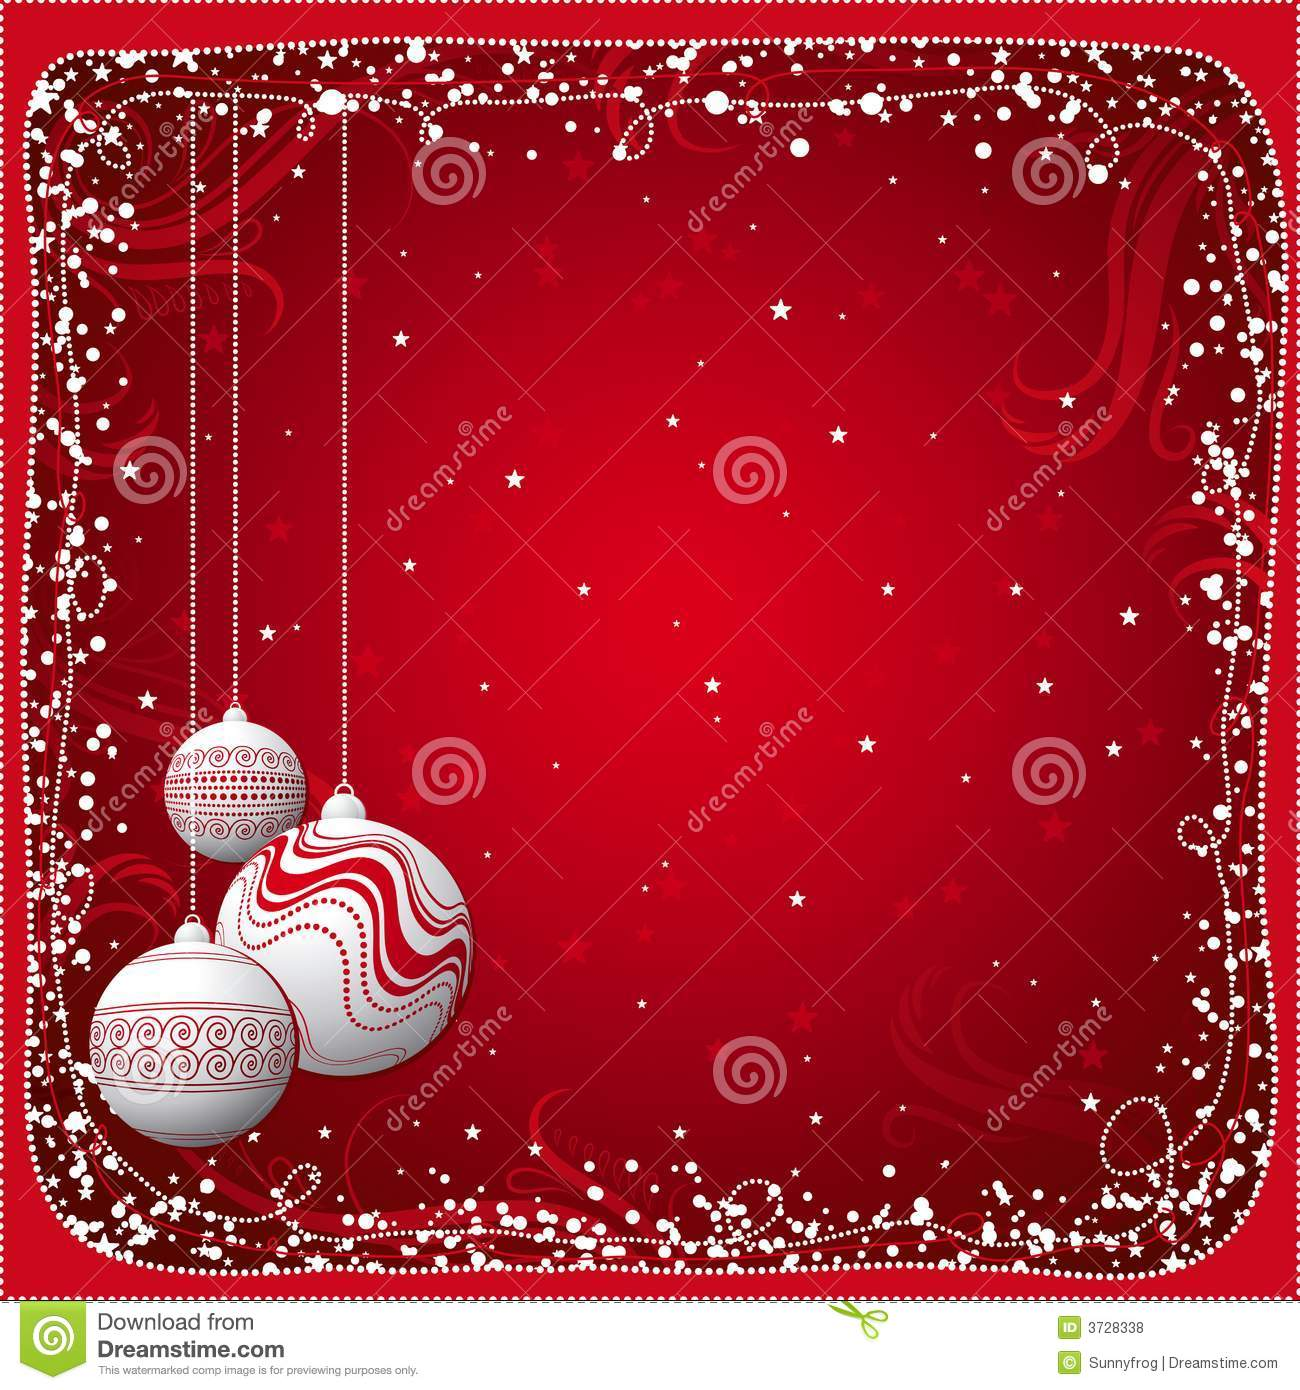 Red Christmas Card With Balls Royalty Free Stock Photos